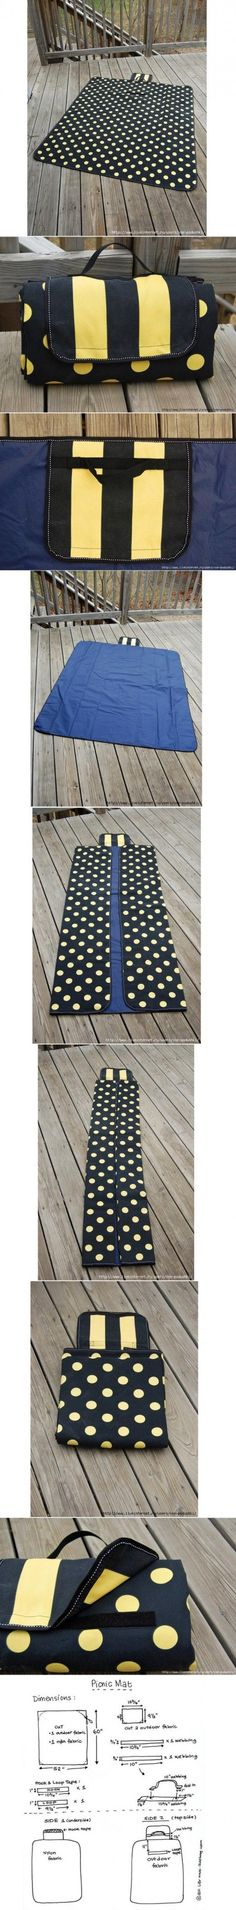 How to make Picnic Mat step by step DIY tutorial instructions 400x3238 How to make Picnic Mat step by step DIY tutorial instructions